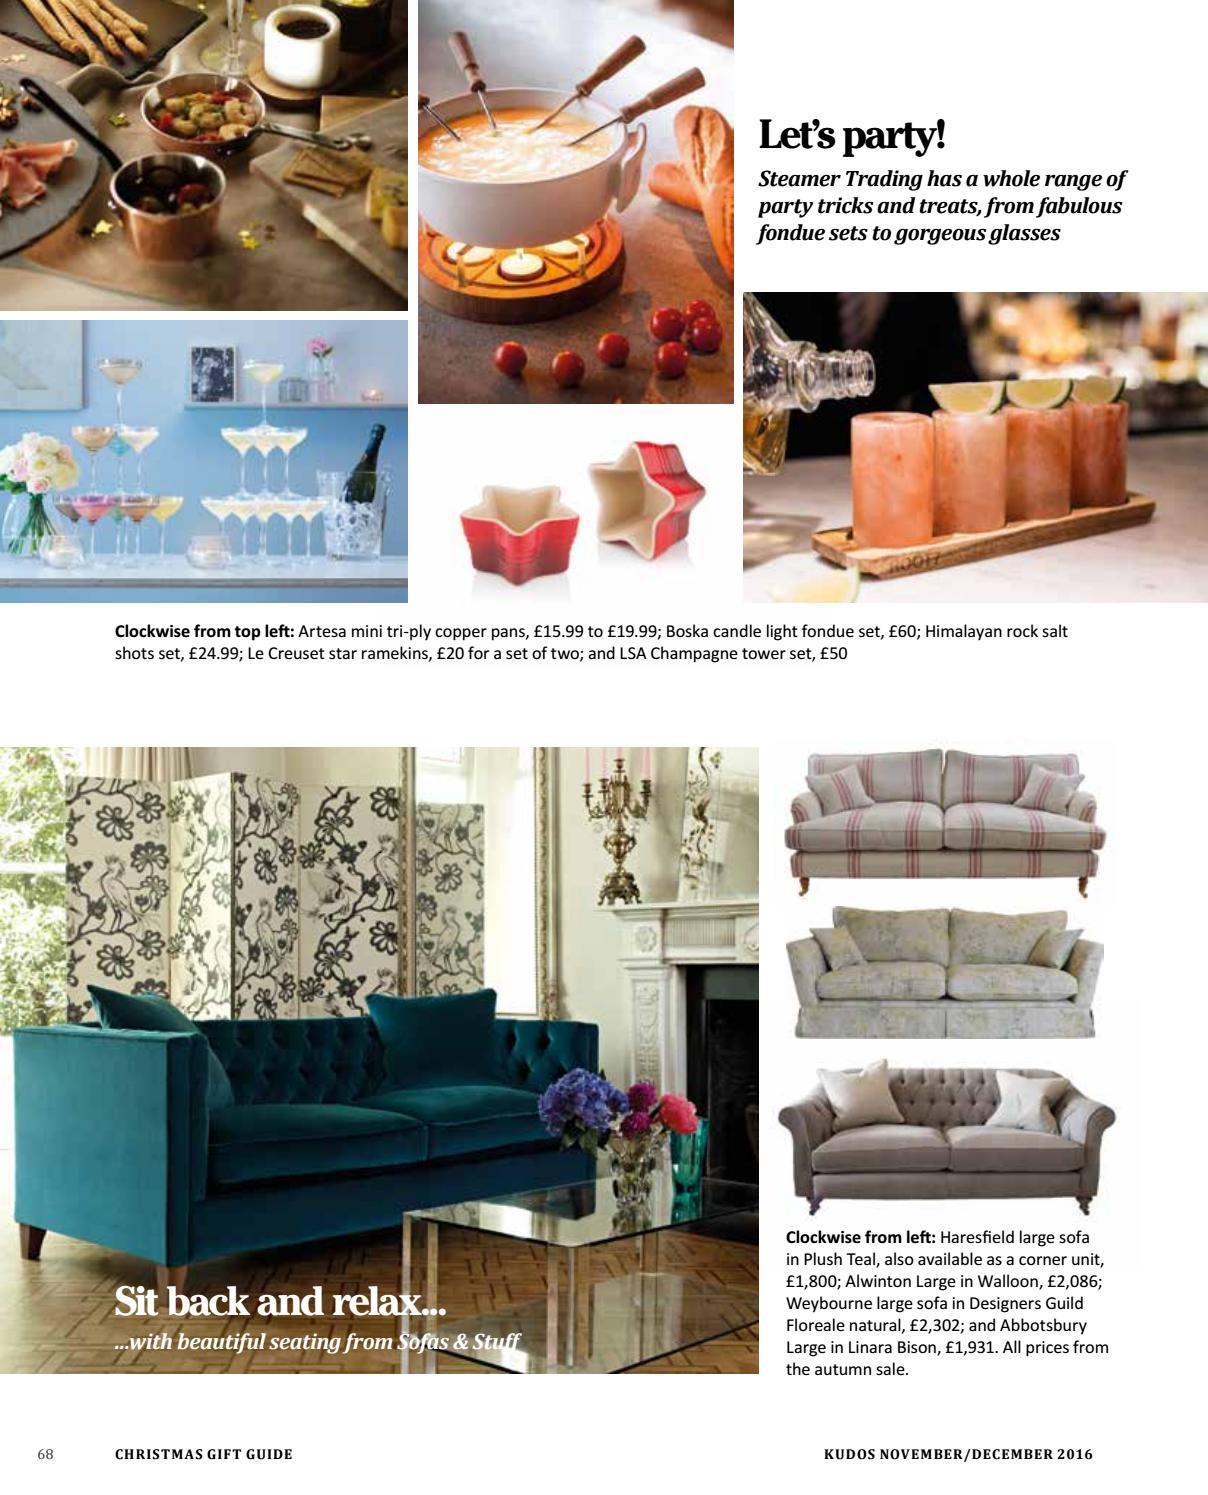 Sofas And Stuff Haresfield Kudos Issue 19